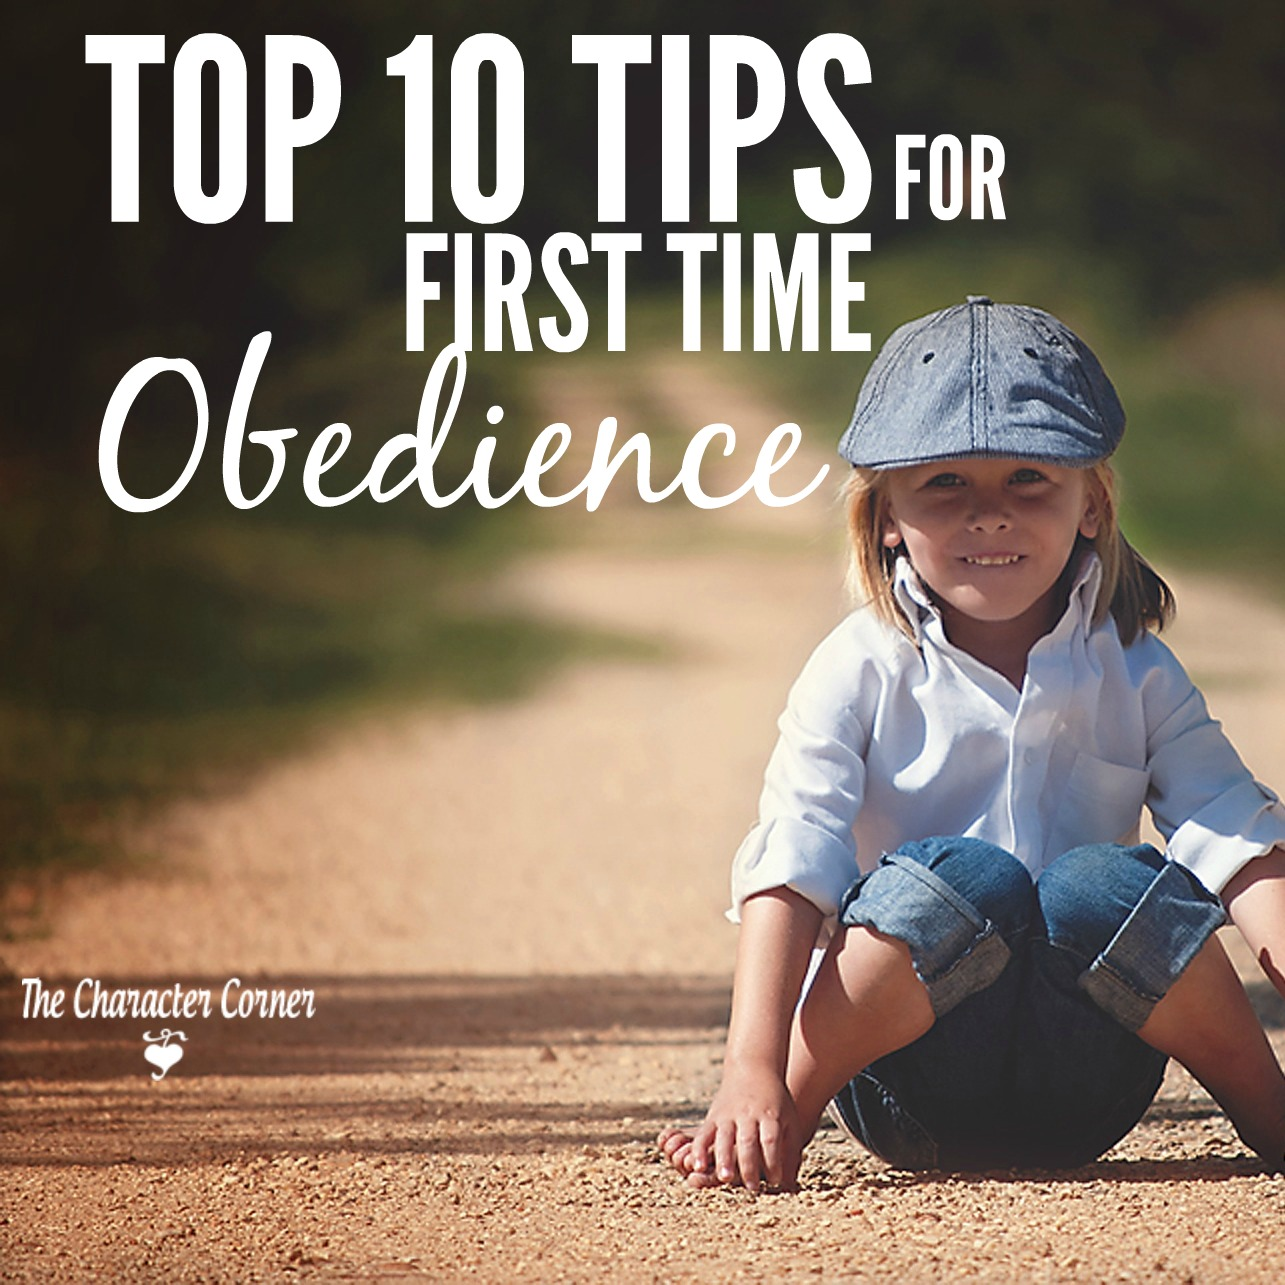 10 Tips For First Time Obedience - The Character Corner-2657